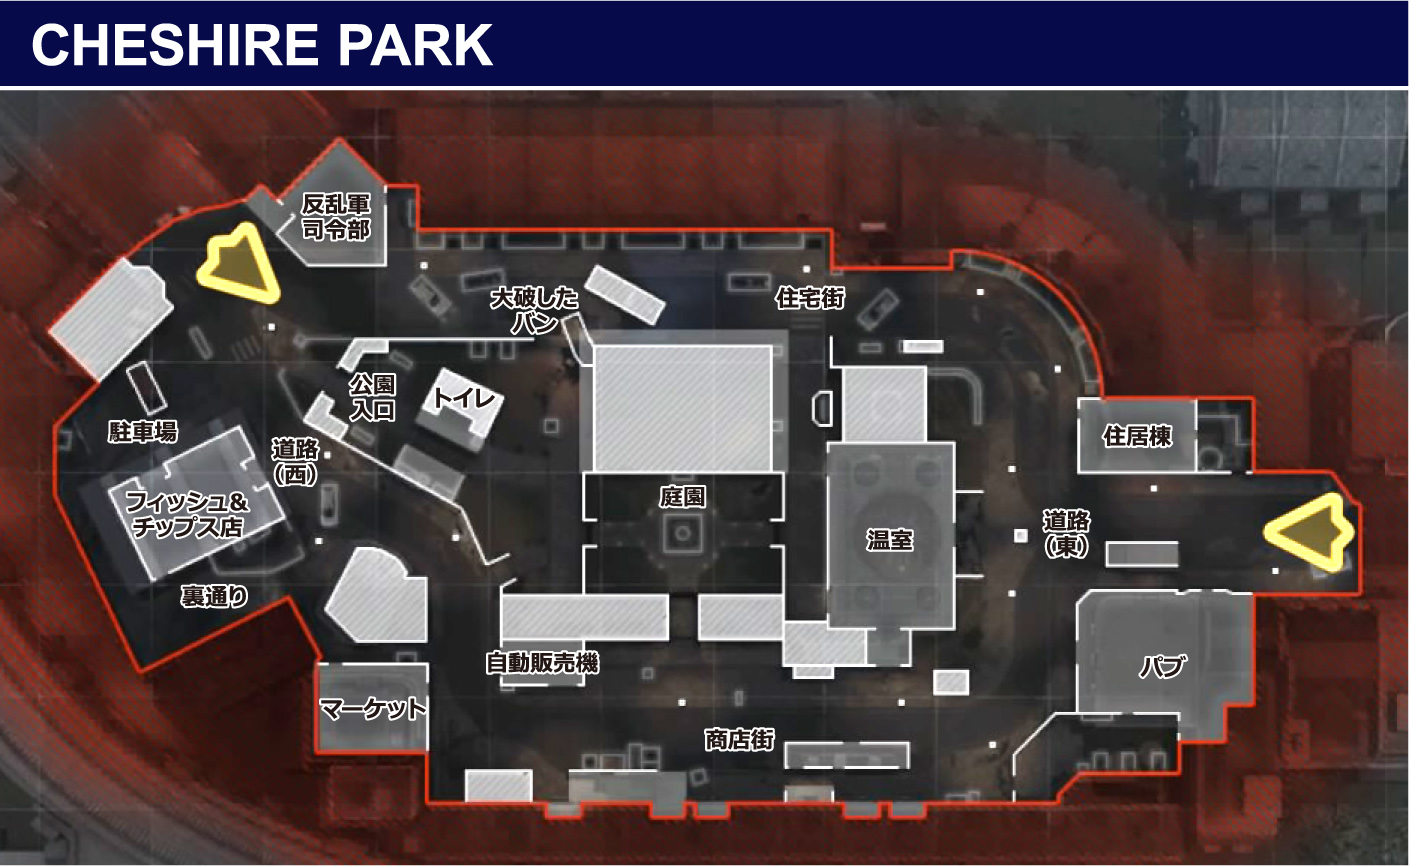 CHESHIRE-PARK-map